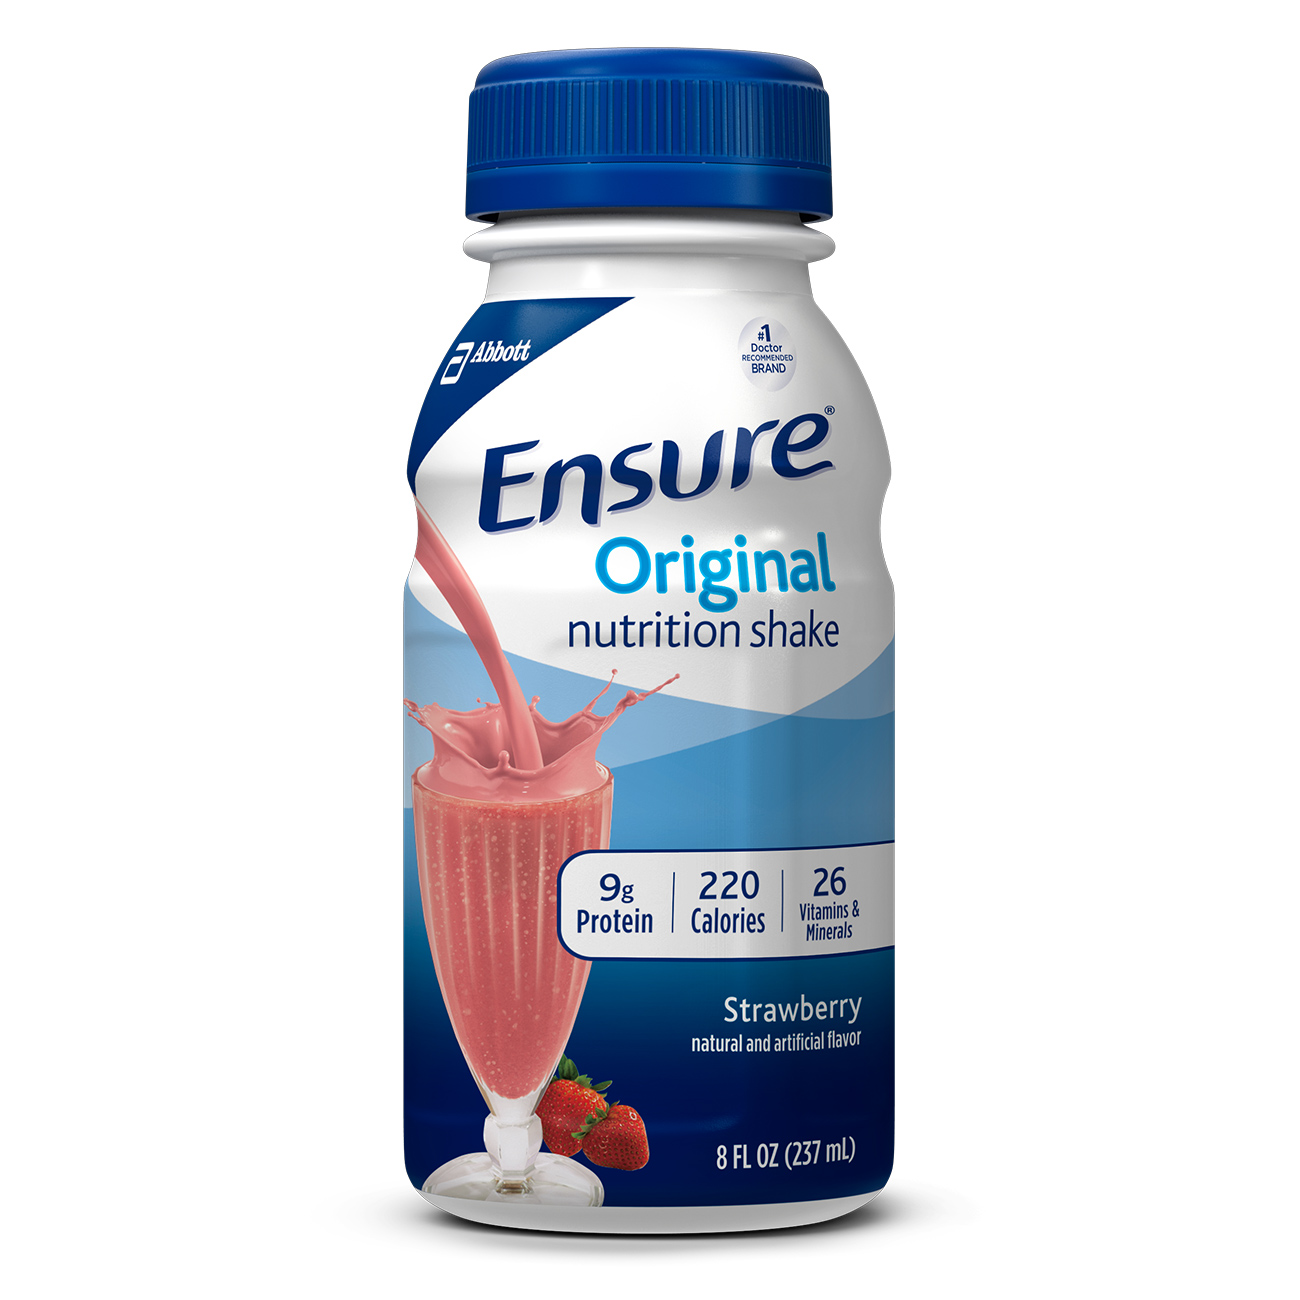 Ensure Original Nutrition Shake Strawberry with 9 grams of protein, Meal Replacement Shakes, 8 Fl oz Bottles, 16 Ct